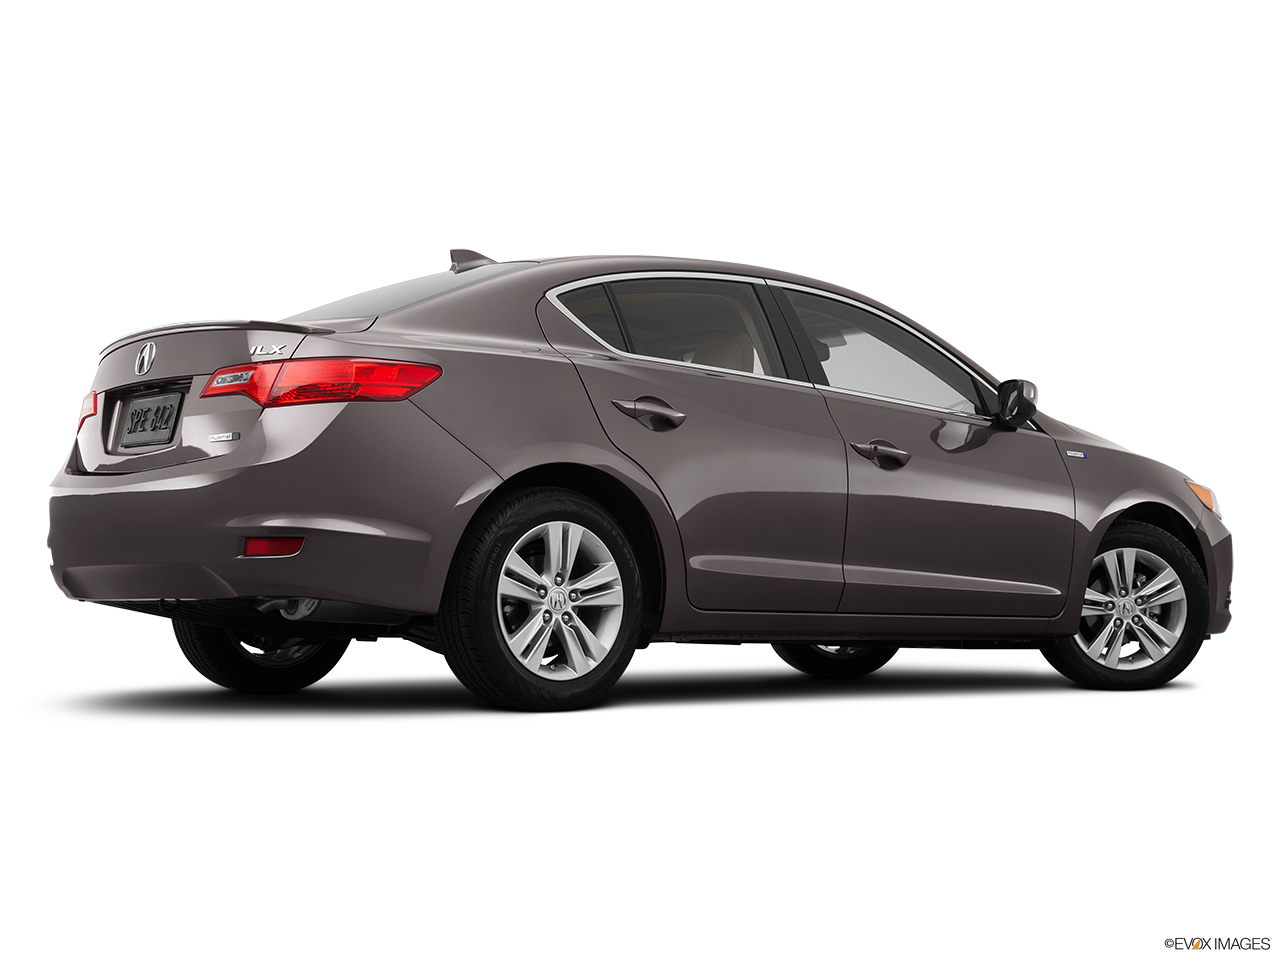 2014 Acura ILX Hybrid Base Low/wide rear 5/8.